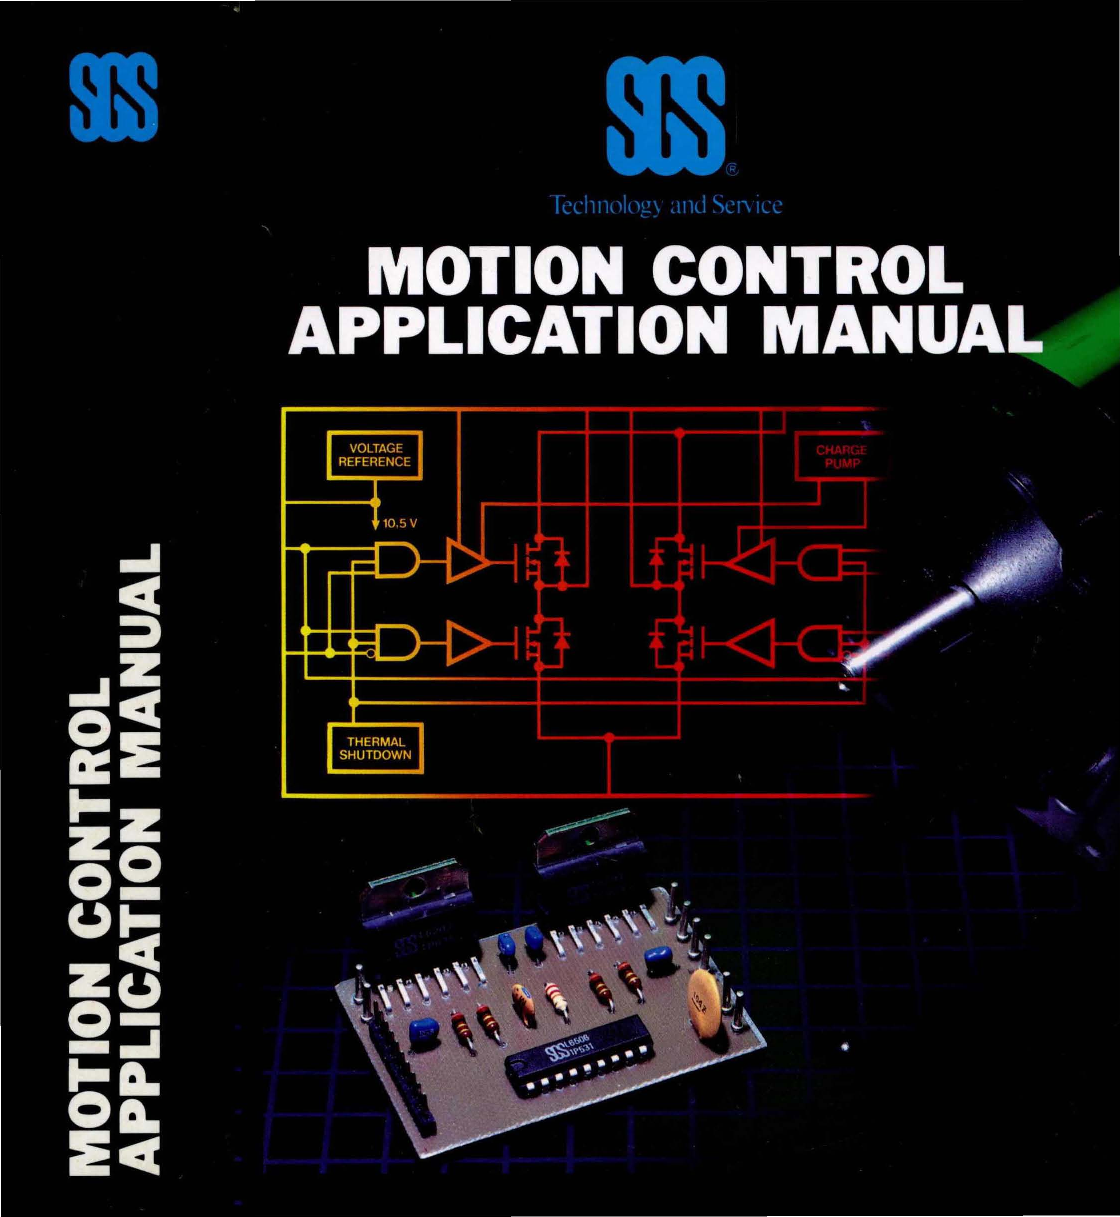 1987 Sgs Motion Control Application Manual 12v 25w Dc Voltage Converter Circuit 2 Basiccircuit